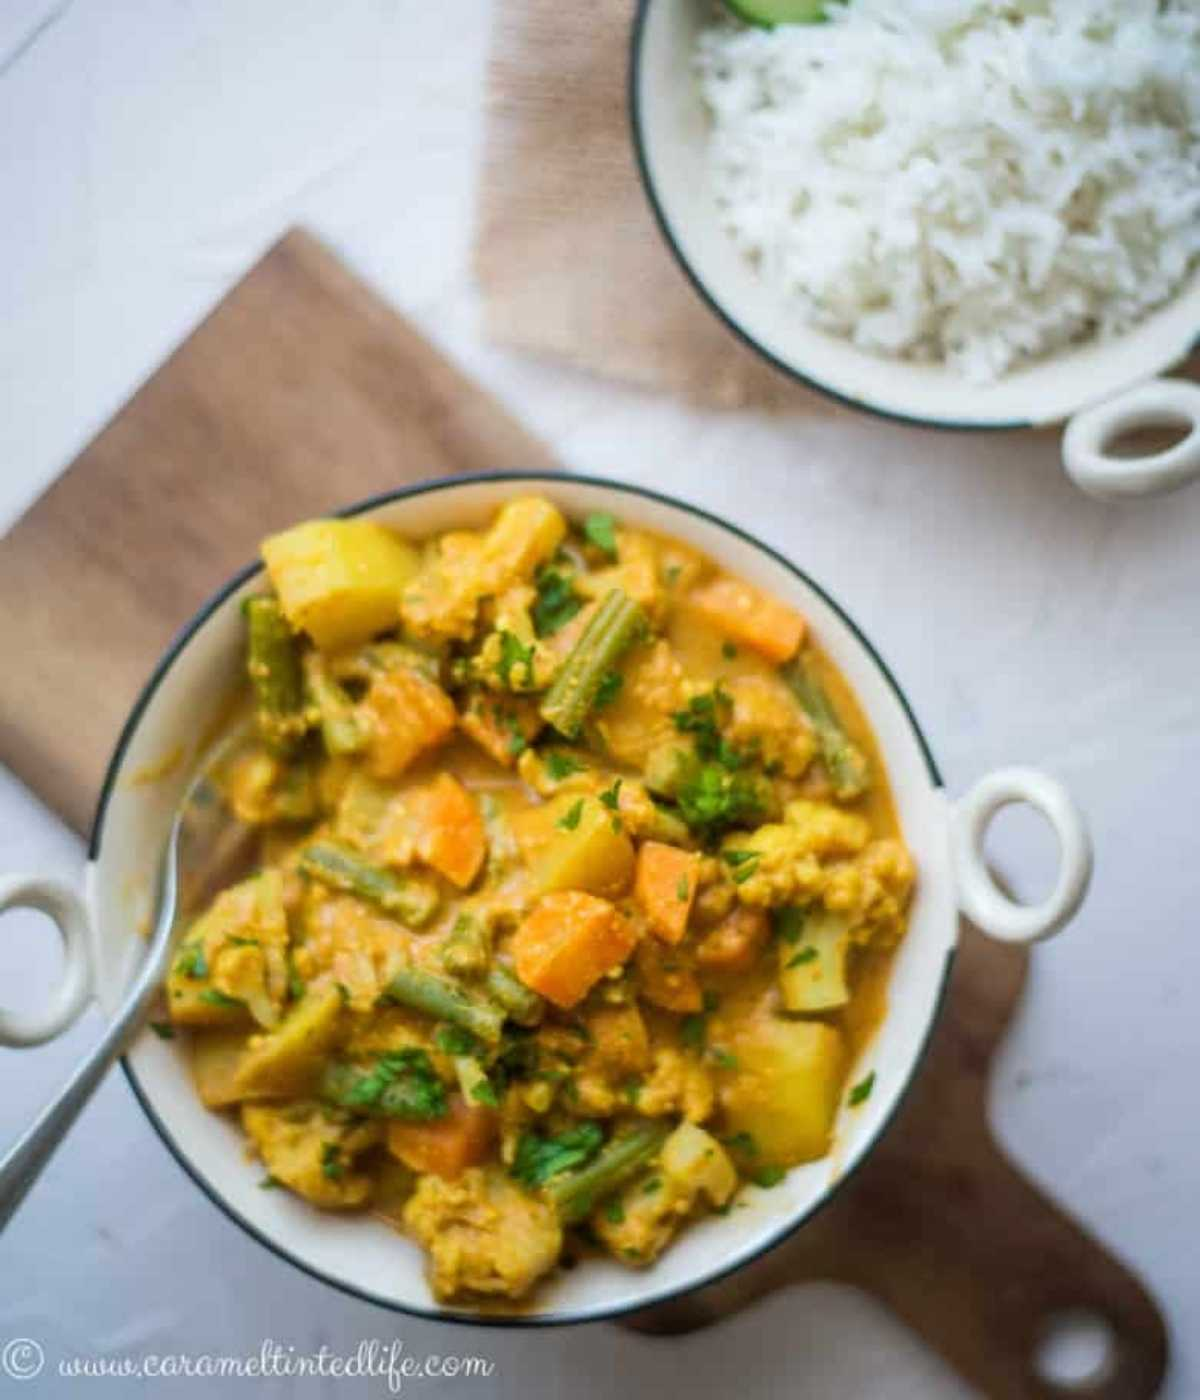 Top view of a bowl of vegetable curry next to a bowl of rice